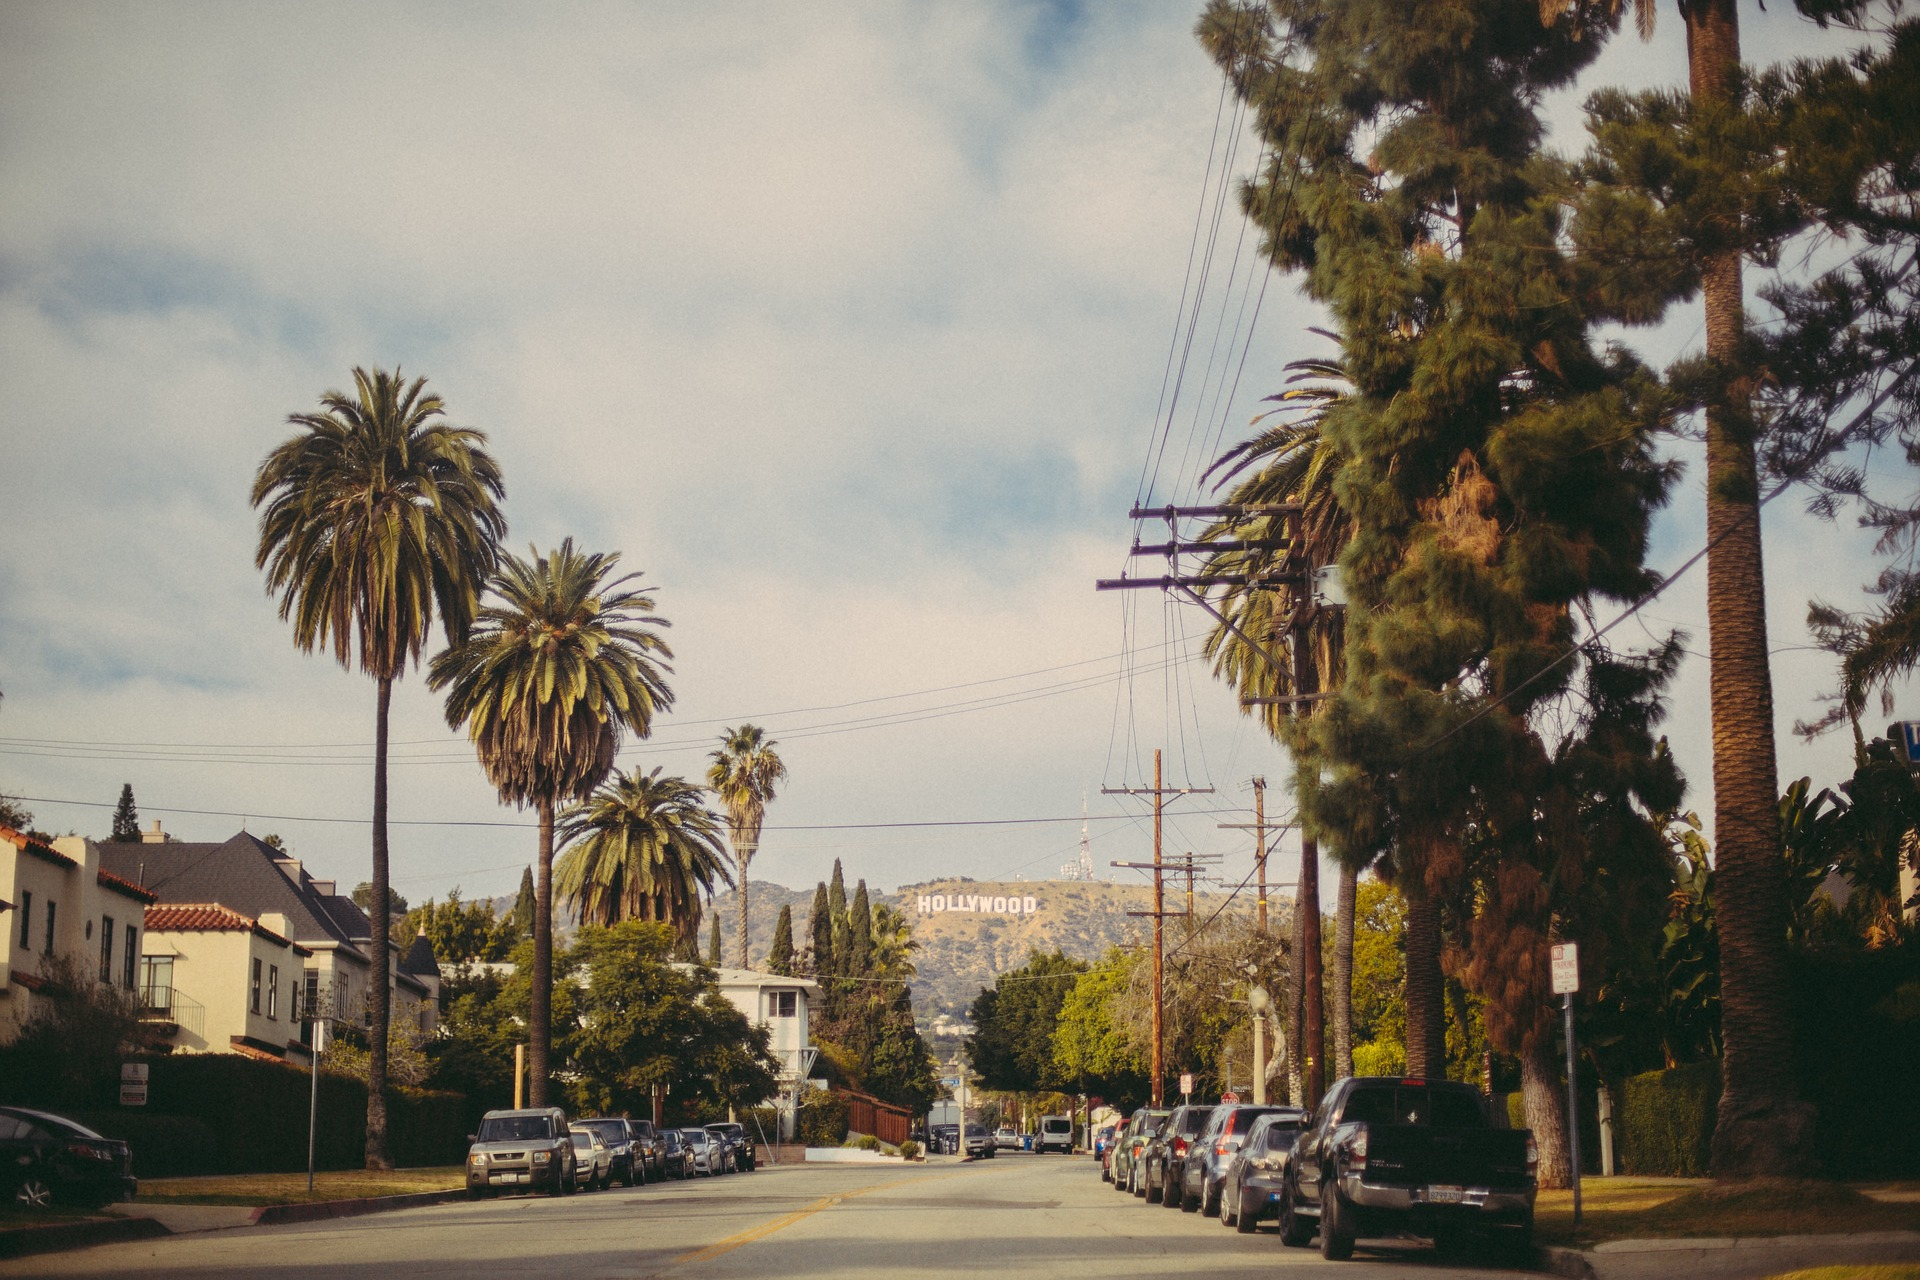 Street lined with palm trees and with Hollywood sign in the distance